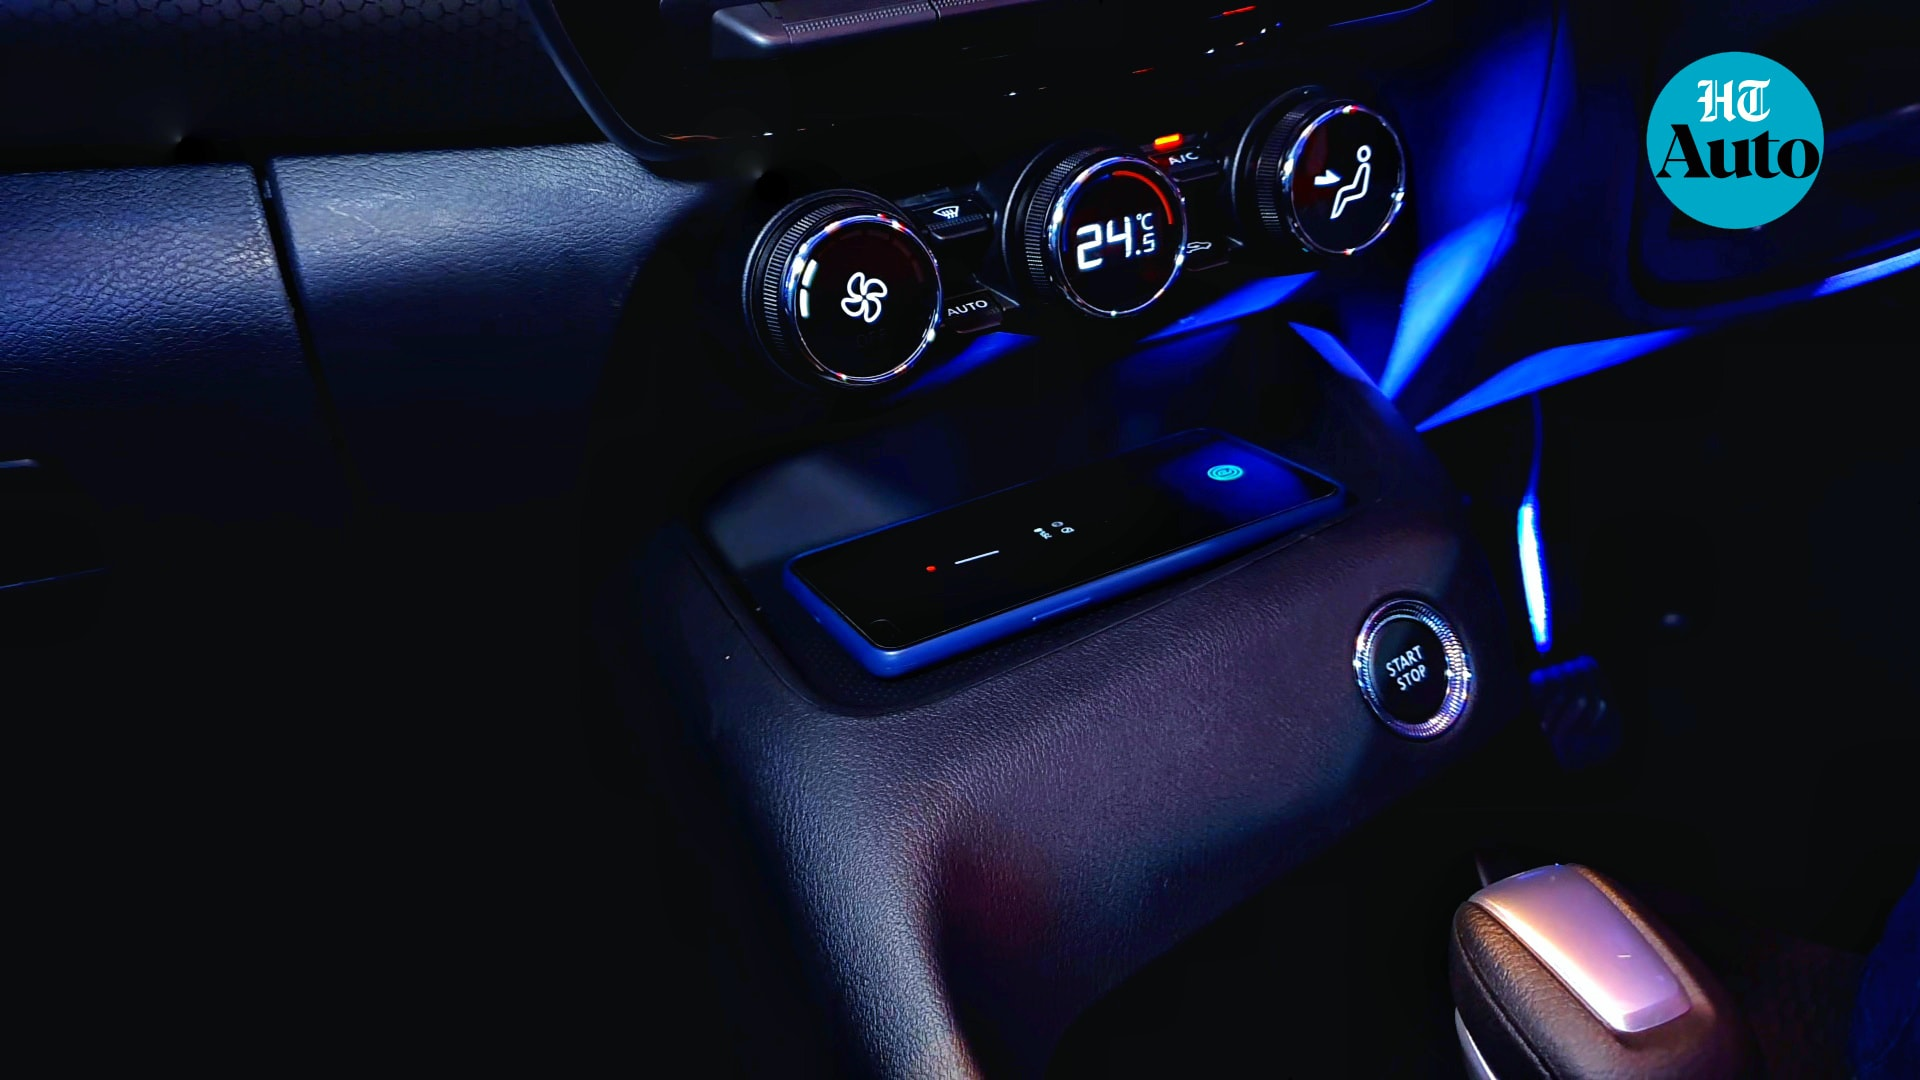 Nissan is promising an optional Tech pack for Magnite at the launch which would replace speakers with premium option. The pack would also include wireless phone charging system, air purifier, puddle lamps and ambient mood lighting, among others. (HT Auto/Sabyasachi Dasgupta)